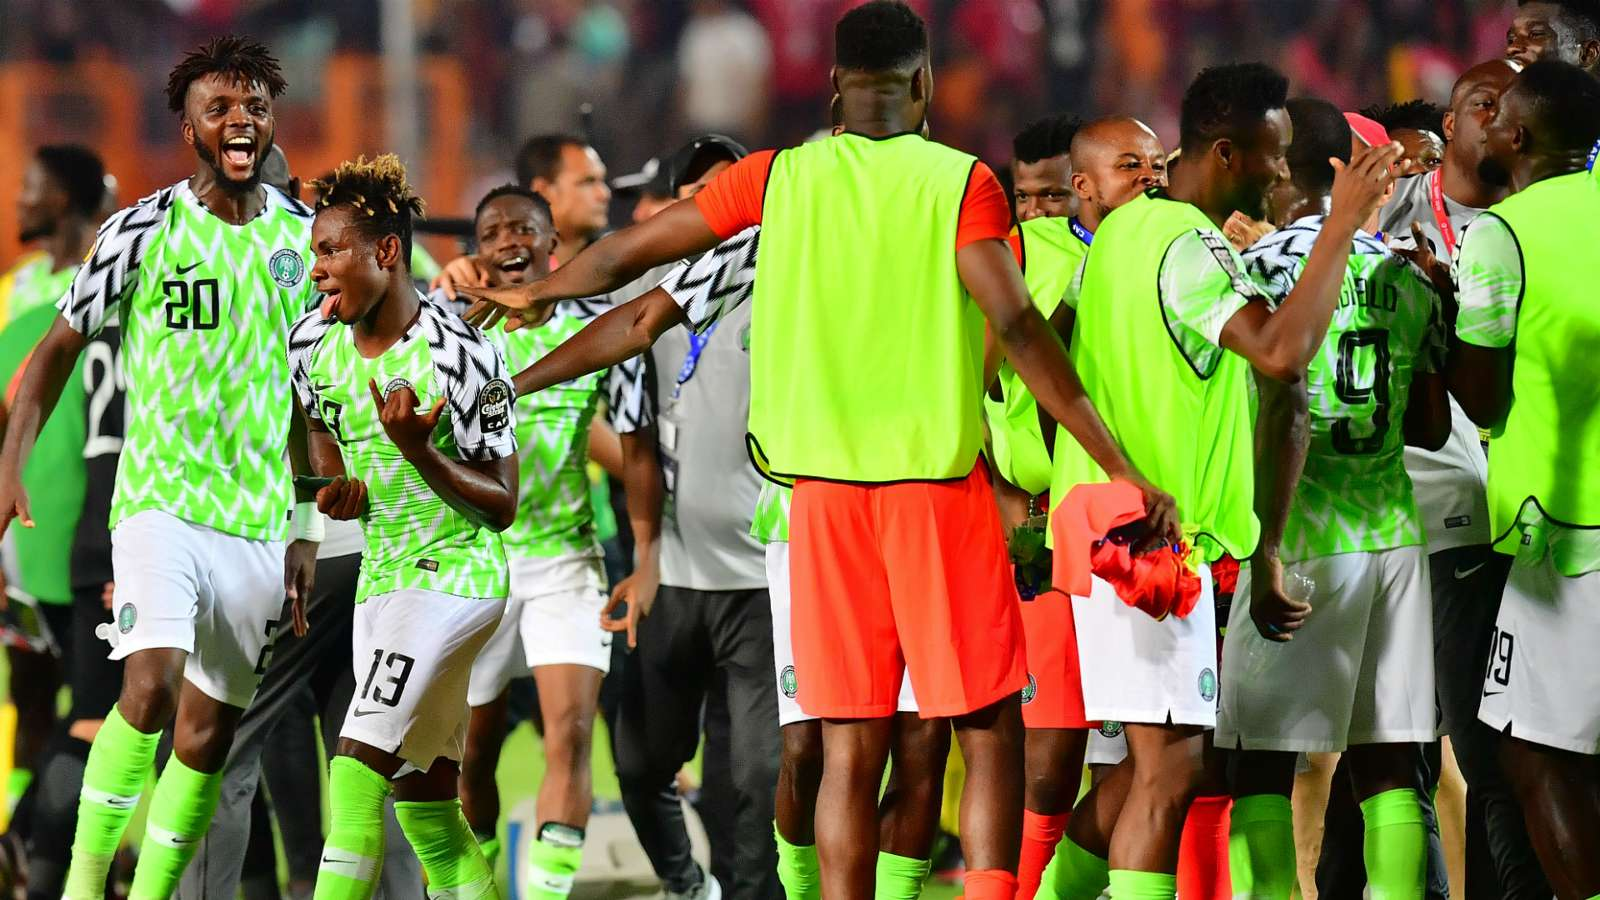 Nigeria vs Ukraine: Maja, Bonaventure, Okoye and Aribo must seize Super Eagles chance - Lawal (Match time 7.30pm)